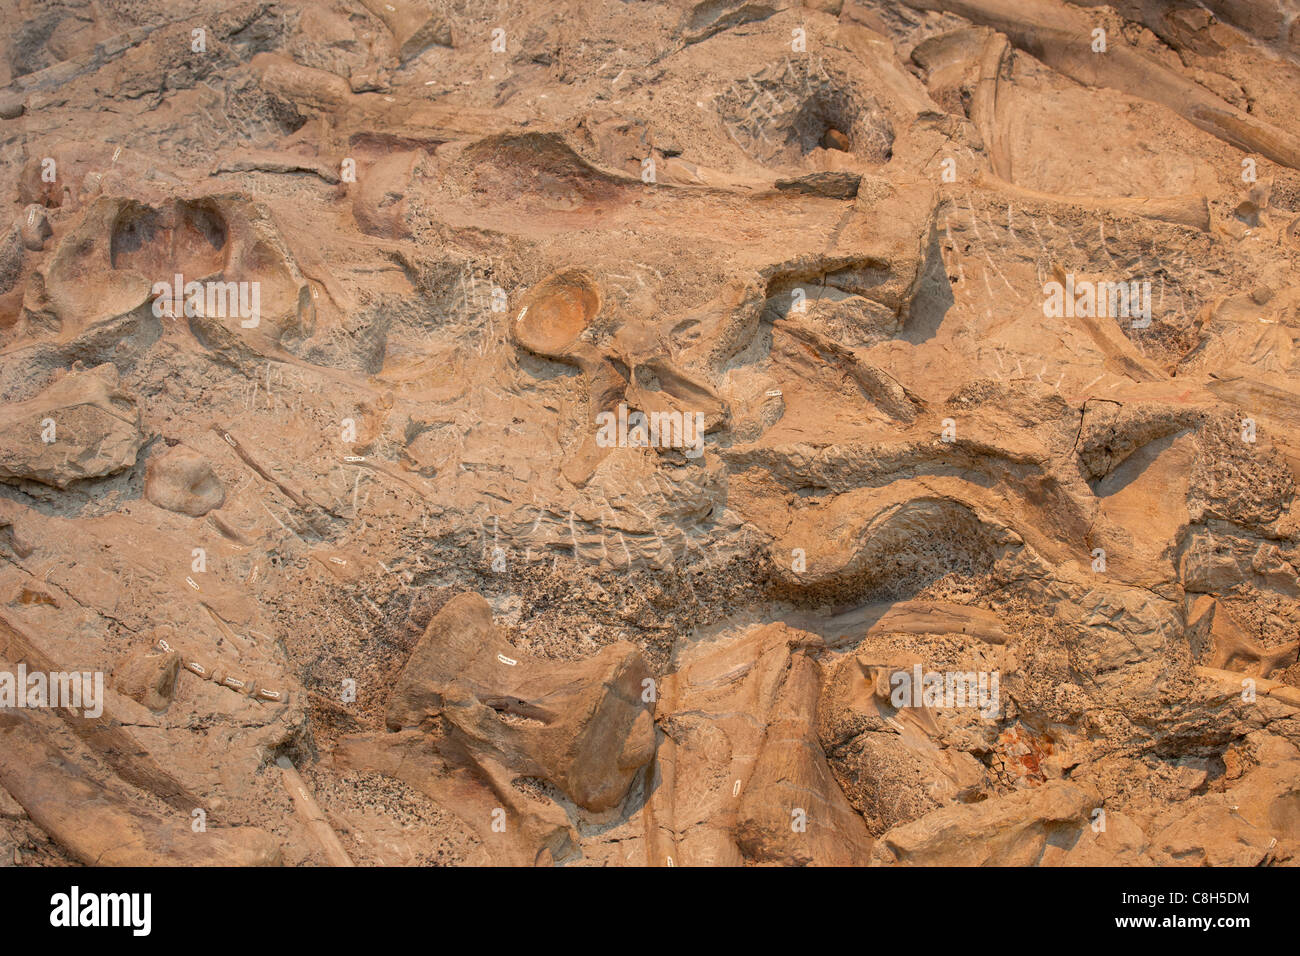 Dinosaur National Monument fossil bones embedded in rock and stone mountain. - Stock Image